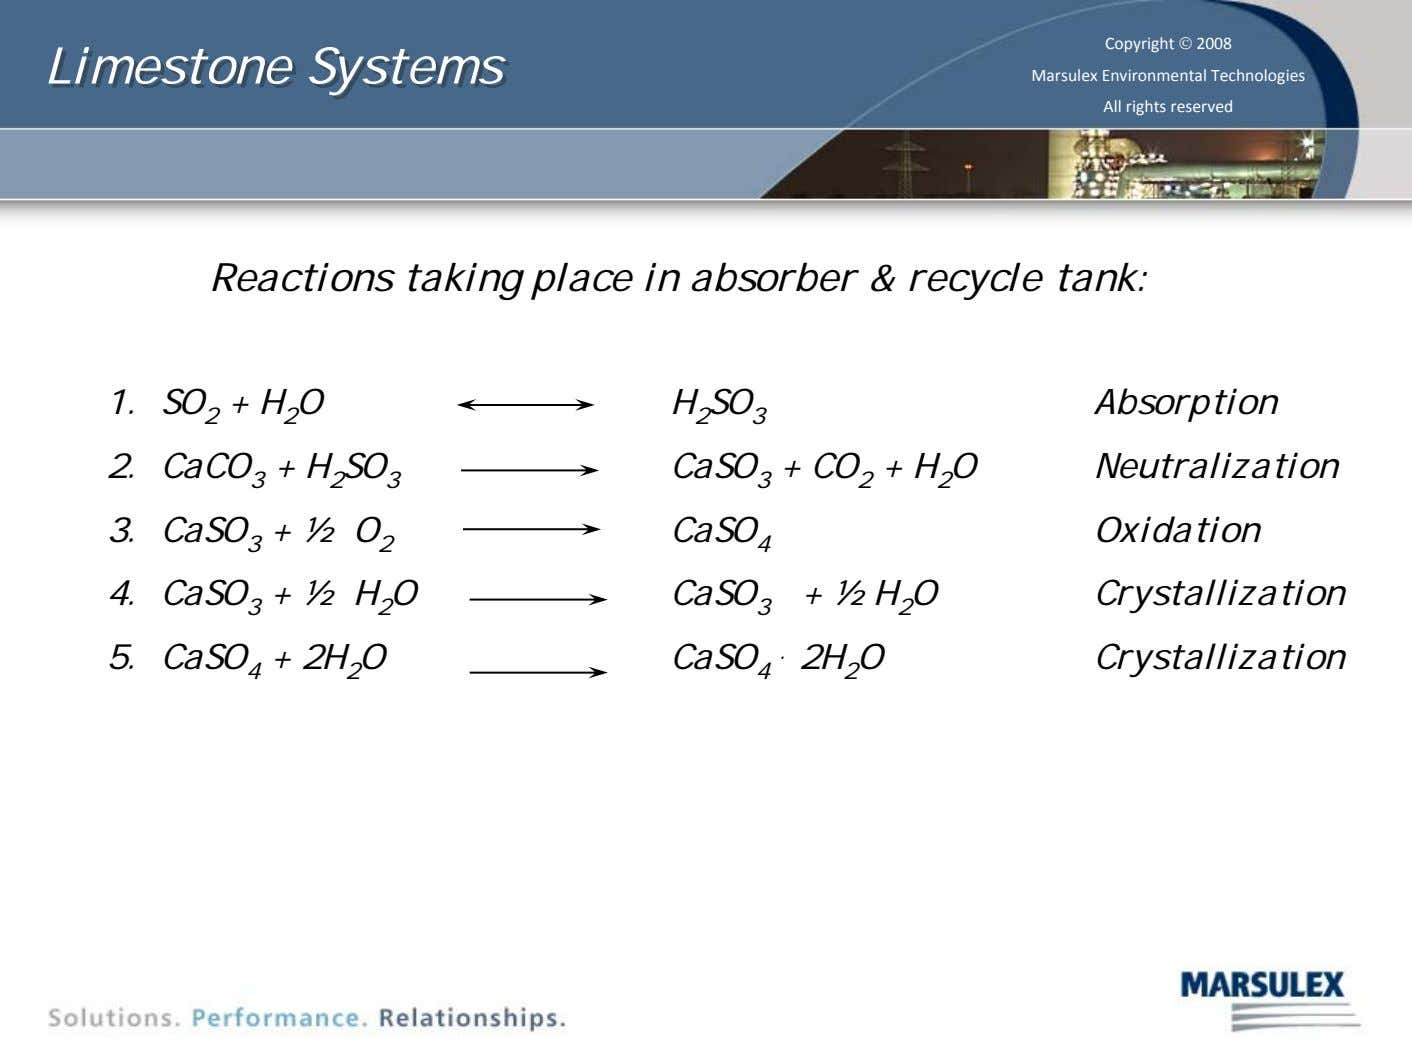 Limestone Limestone Systems Systems Copyright © 2008 Marsulex Environmental Technologies All rights reserved Reactions taking place